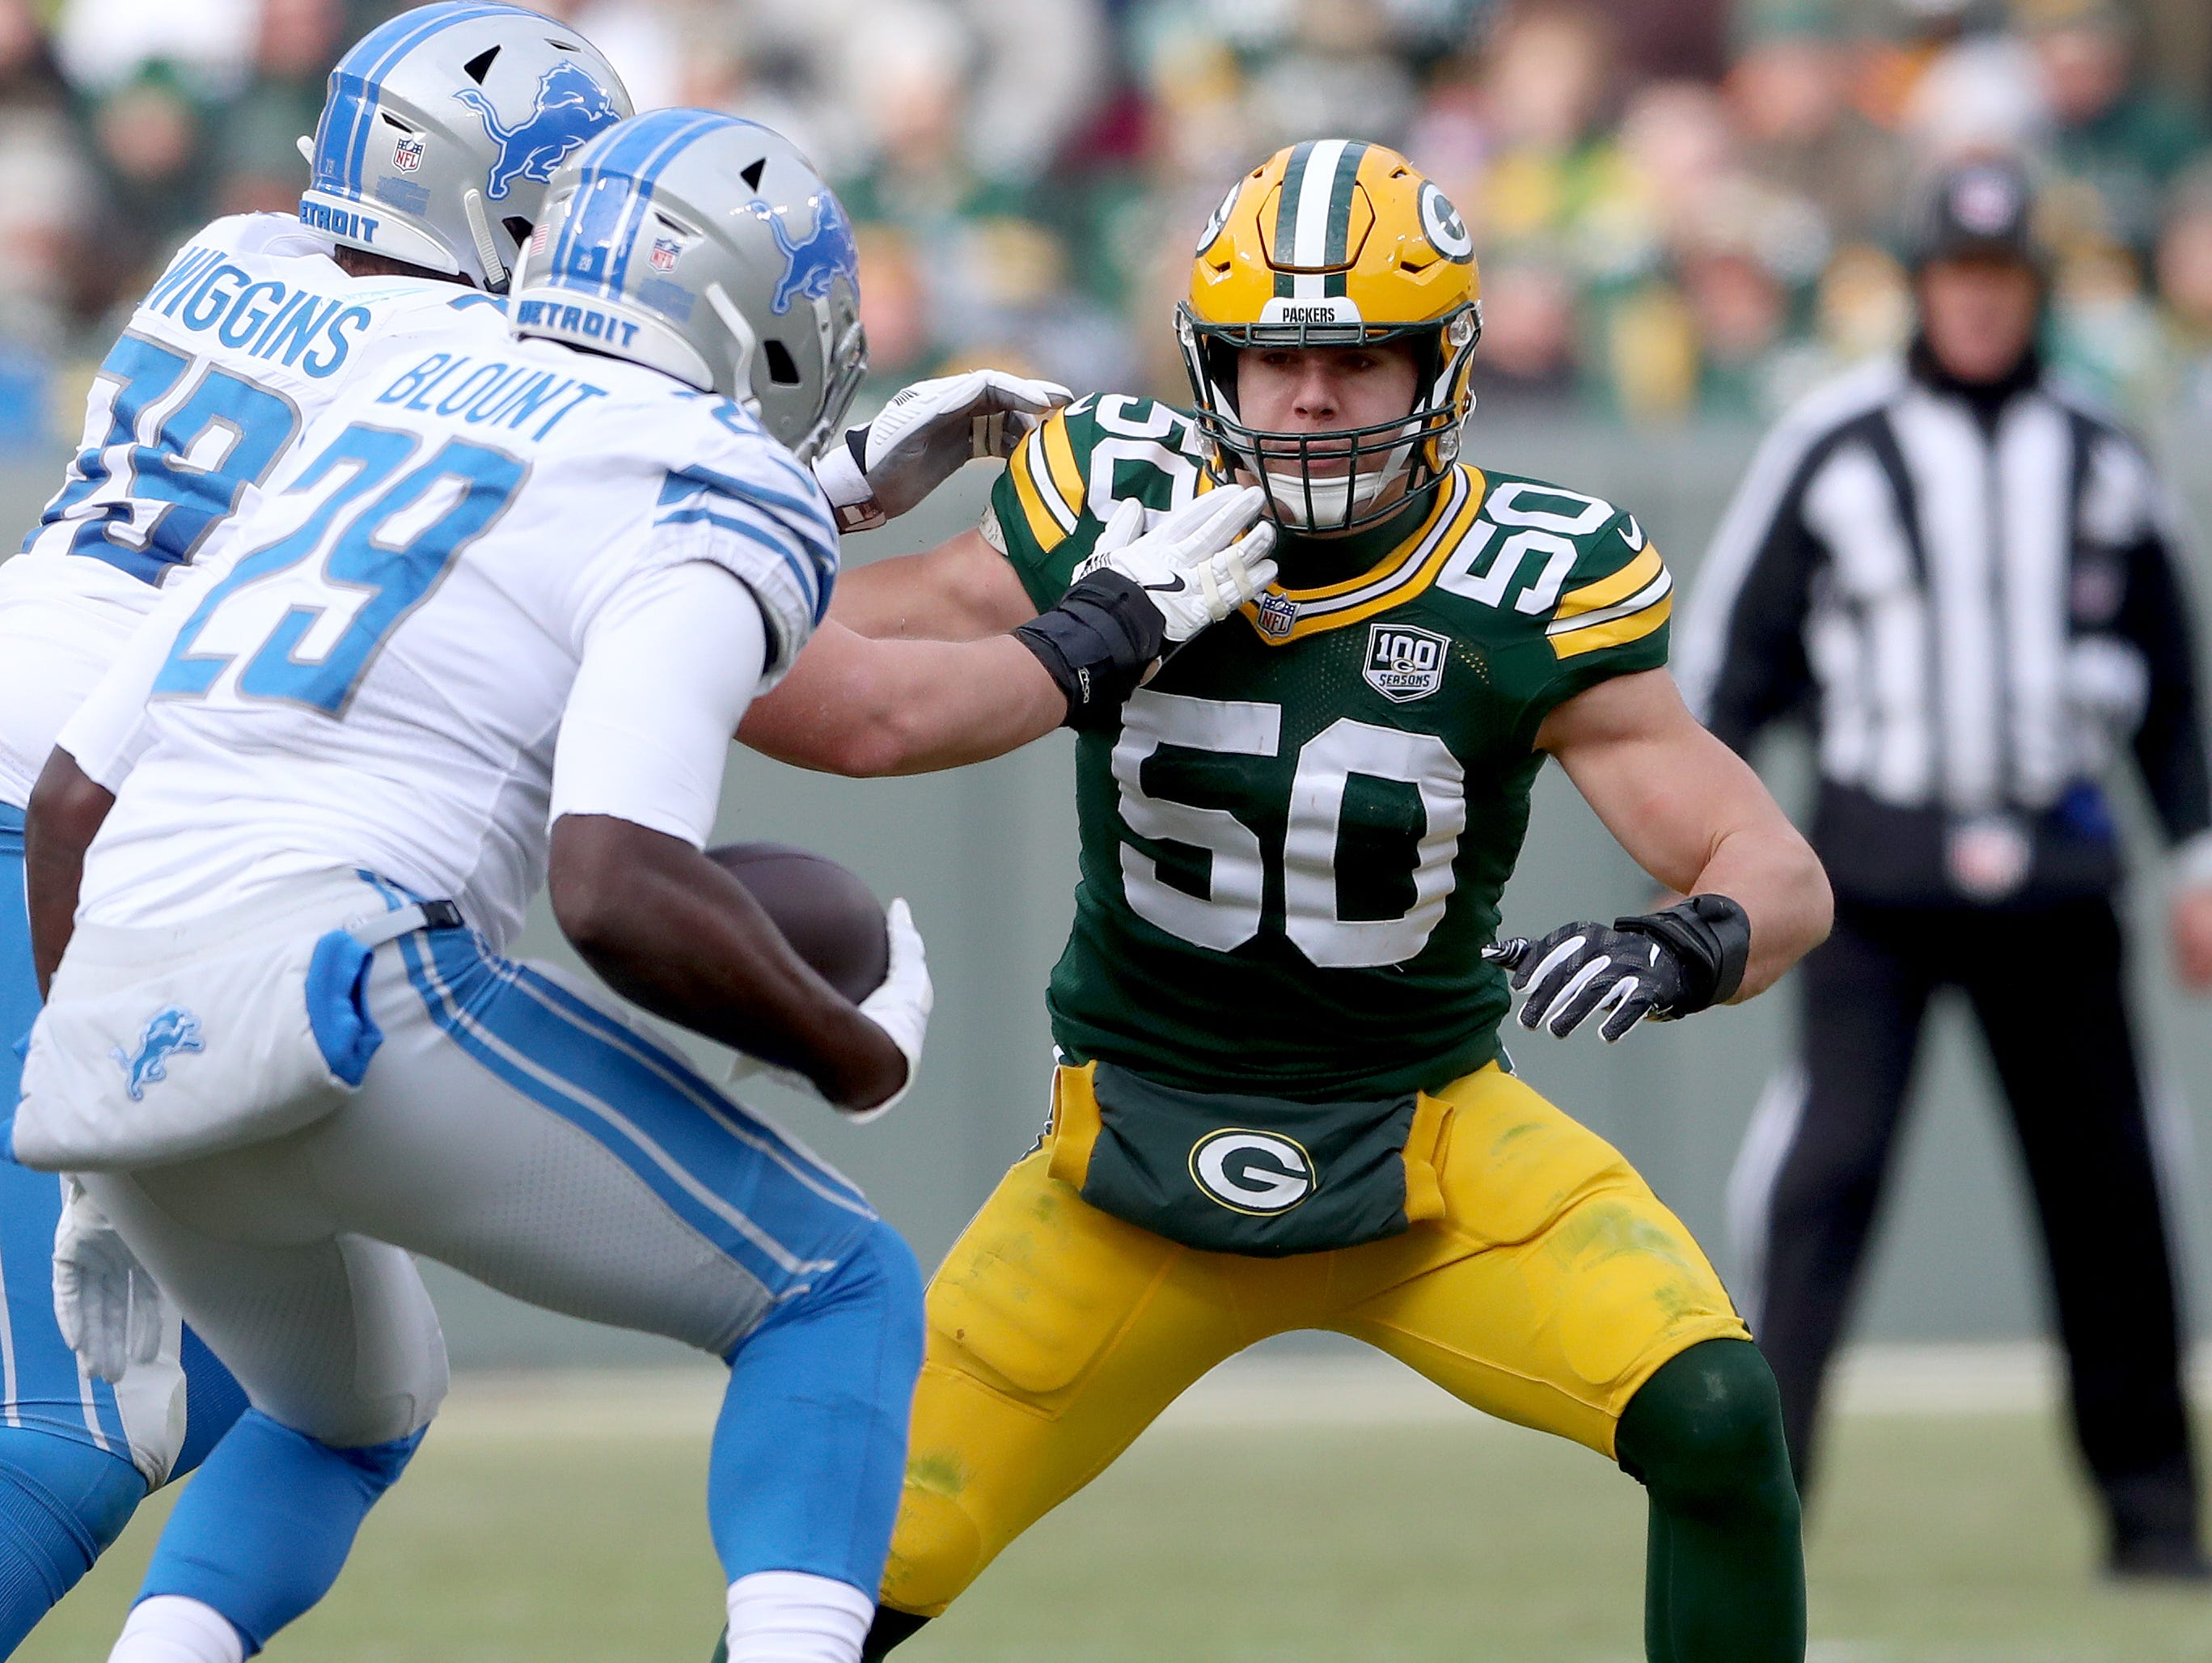 Green Bay Packers inside linebacker Blake Martinez (50) looks to tackle running back LeGarrette Blount (29) against the Detroit Lions at Lambeau Field Sunday, December 30, 2018 in Green Bay, Wis.